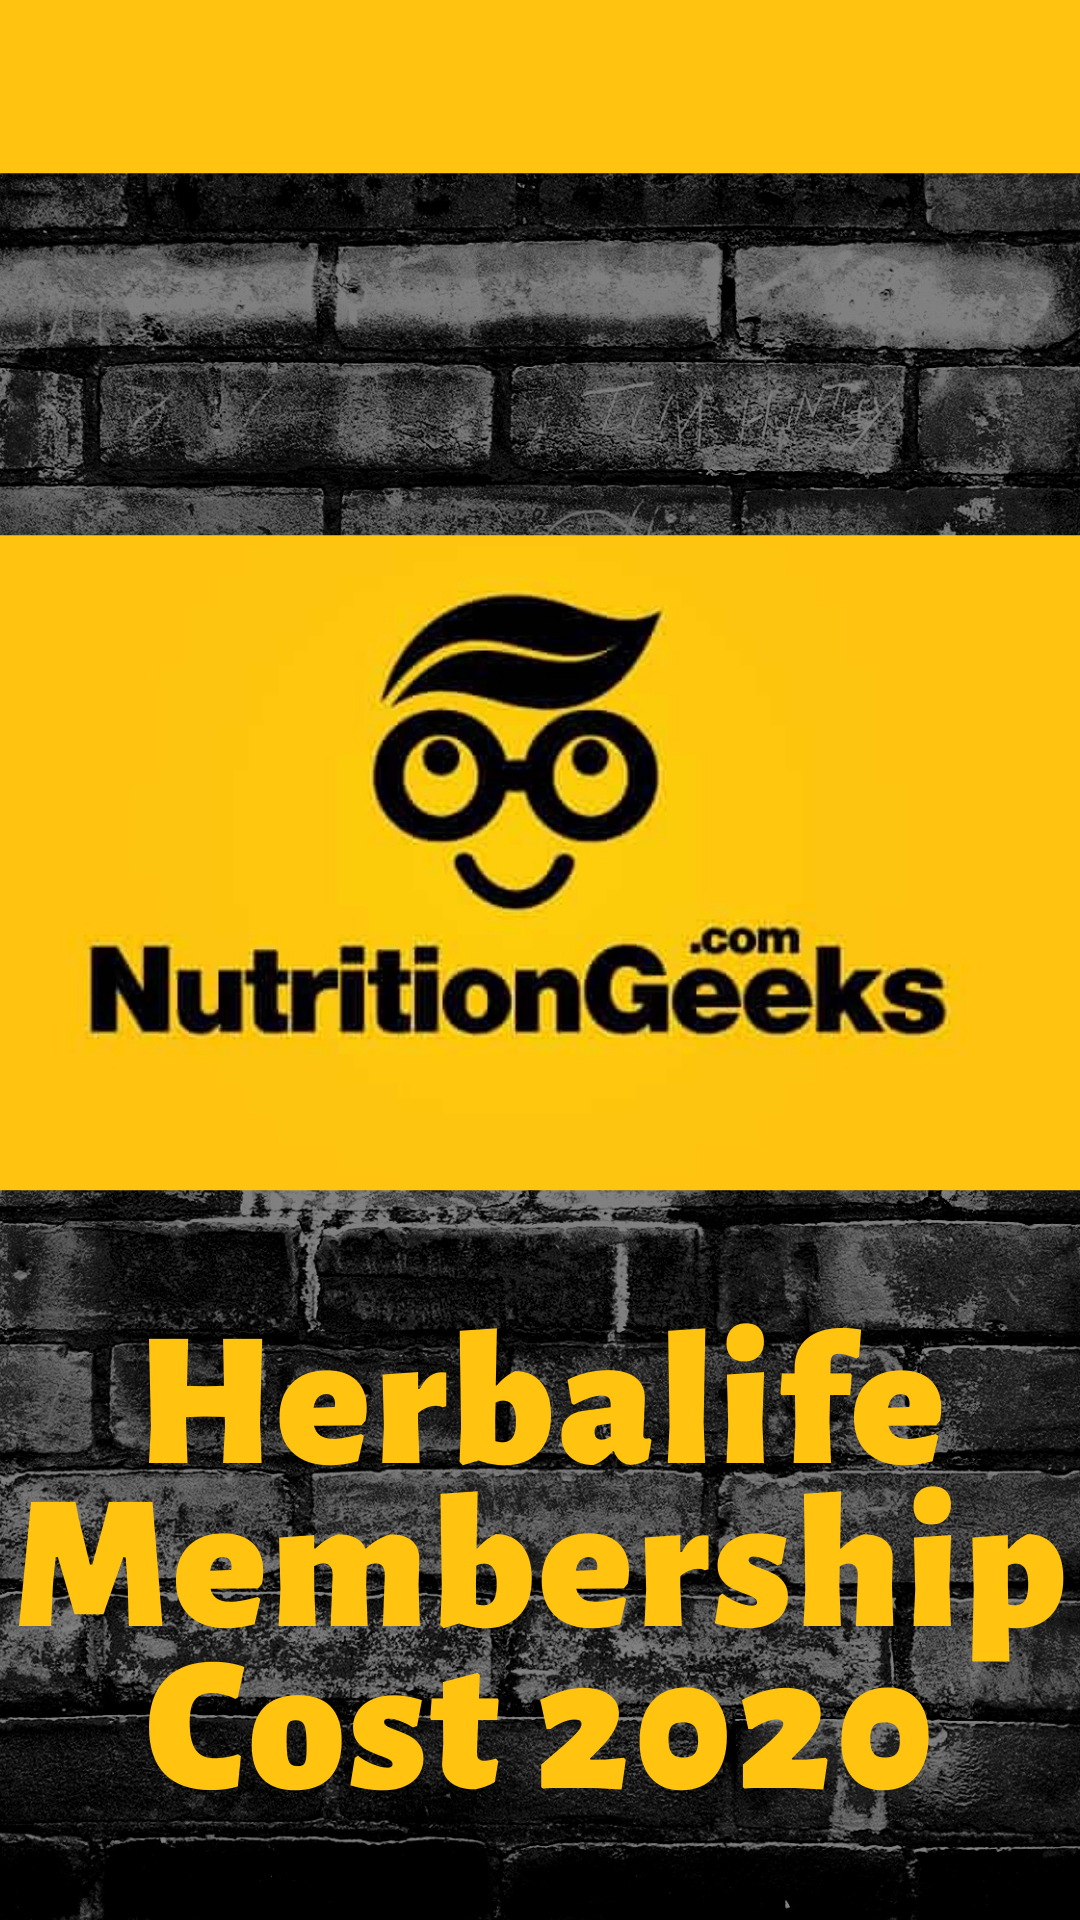 Herbalife Membership Cost 2020 Benefits In 2020 Herbalife Memberships Fitness Nutrition